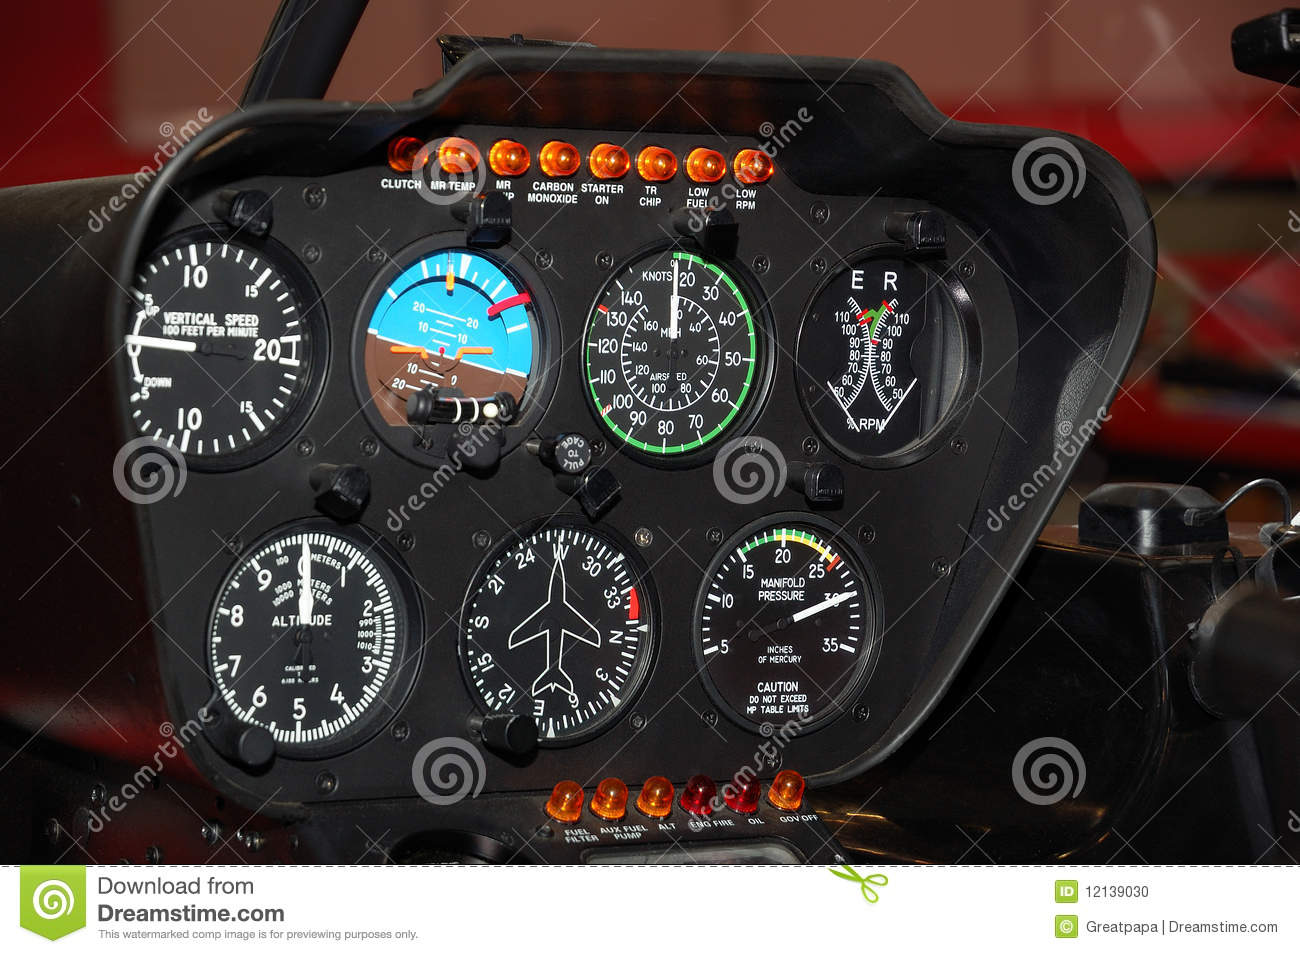 helicopter autopilot with Stock Photo Control Panel Helicopter Cockpit Image12139030 on 594706 also Swashplate  helikopter in addition Airbus Helicopters Vince Lo Sviluppo Lah Della Corea Del Sud furthermore Cirrus Sr20 besides Dragoncameradrones.